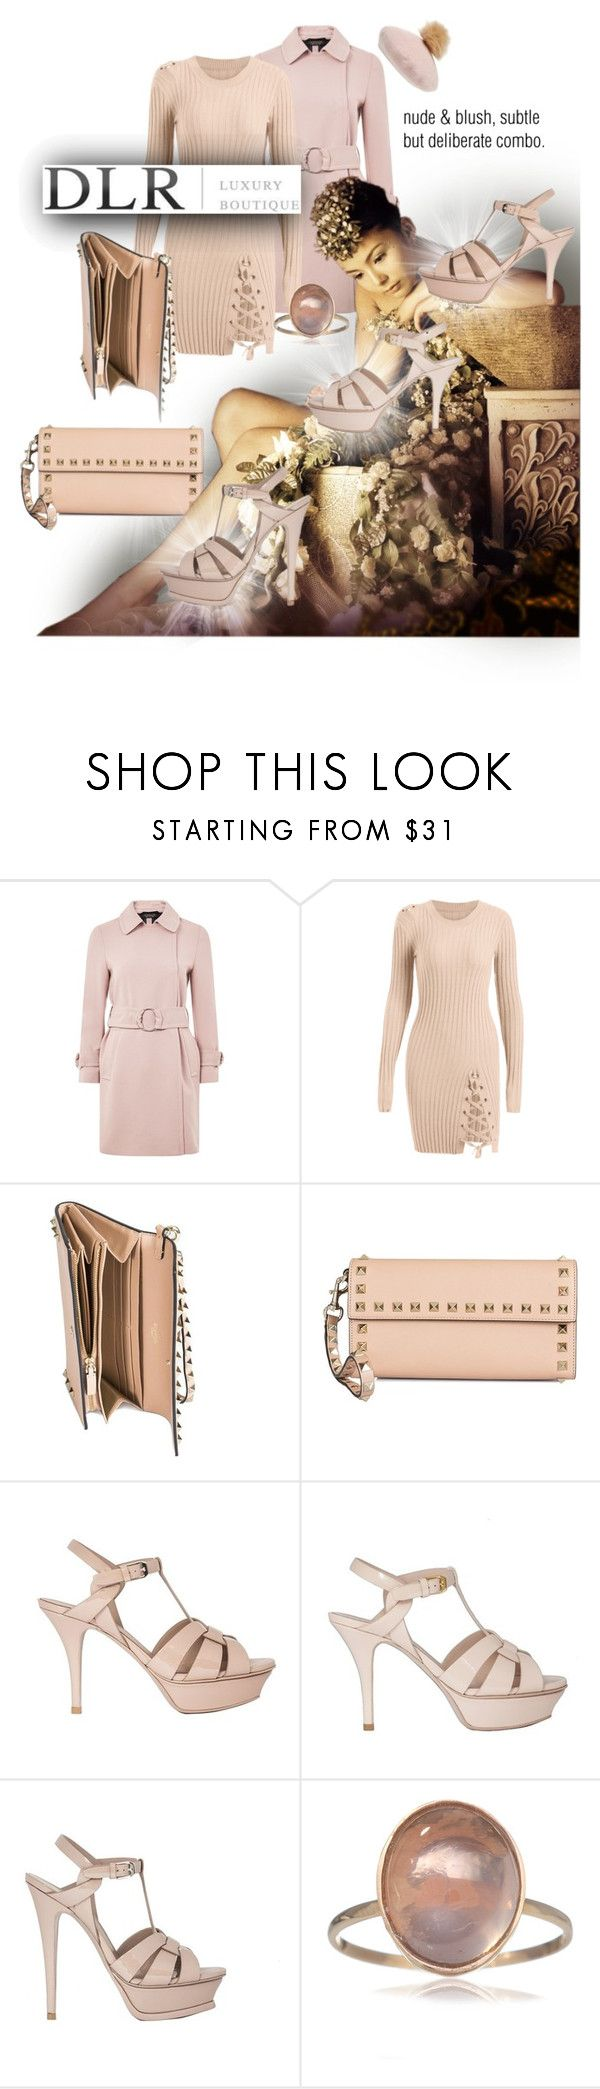 """""""tribute DLRBOUTIQUE"""" by caroline-buster-brown ❤ liked on Polyvore featuring Topshop, Valentino, Yves Saint Laurent and NYC Underground"""